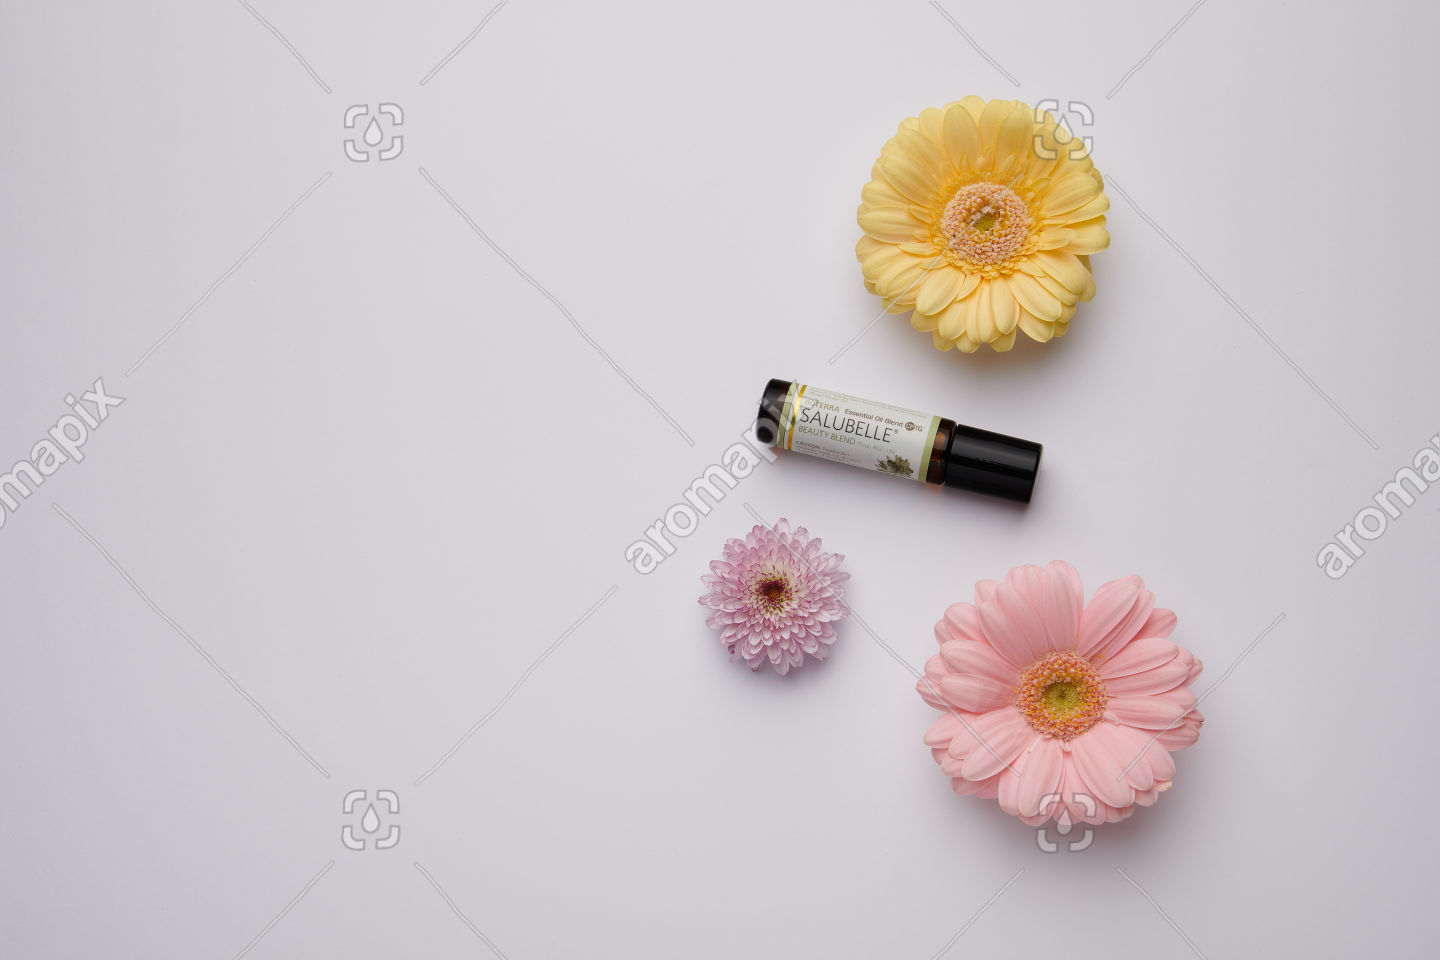 doTERRA Salubelle with flowers on white